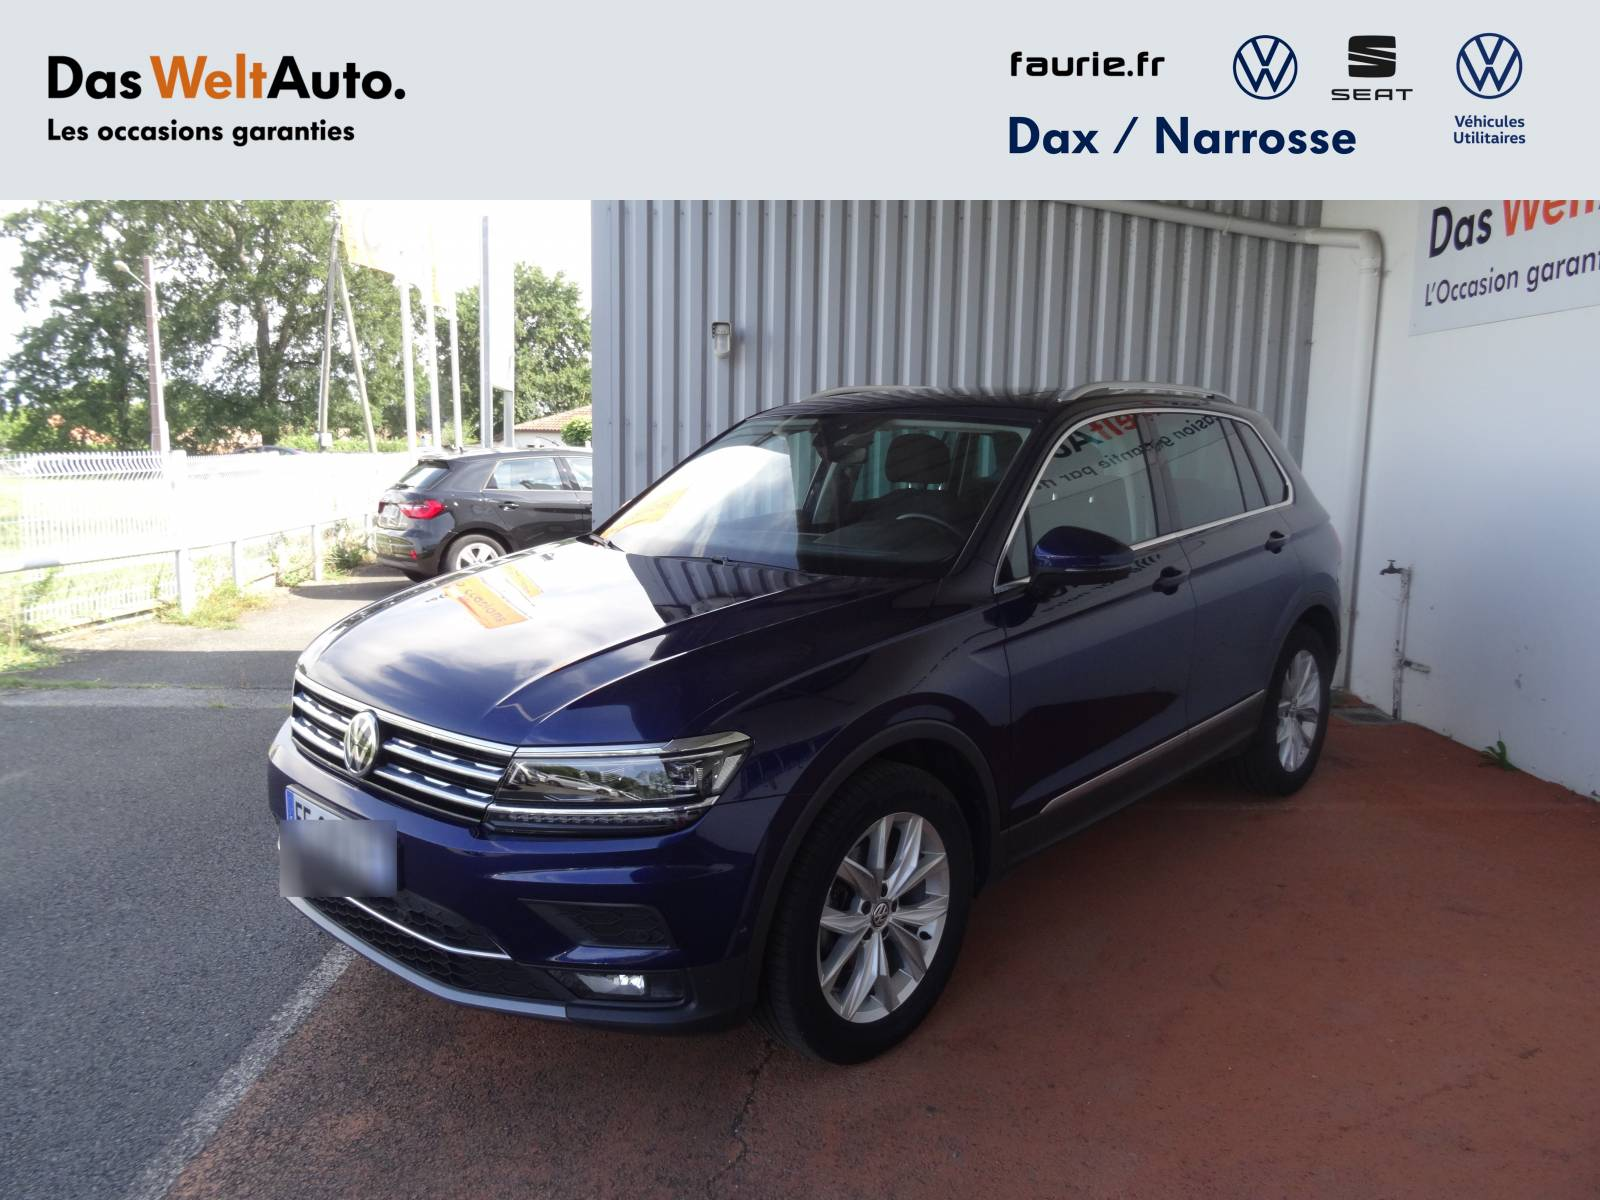 VOLKSWAGEN Tiguan 2.0 TDI 150 DSG7 - véhicule d'occasion - Site Internet Faurie - Volkswagen - Faurie Axess Sud Ouest Dax - 40180 - Narrosse - 16